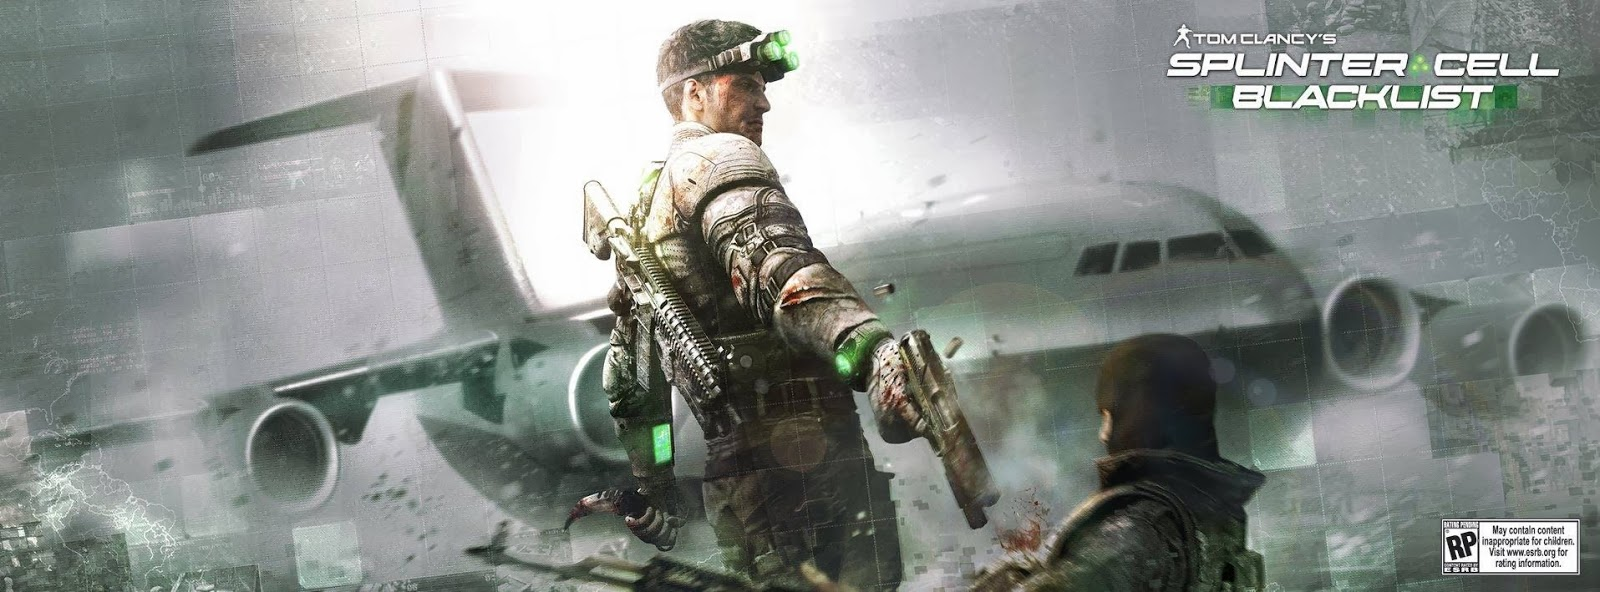 The most splinter cell hentai don't